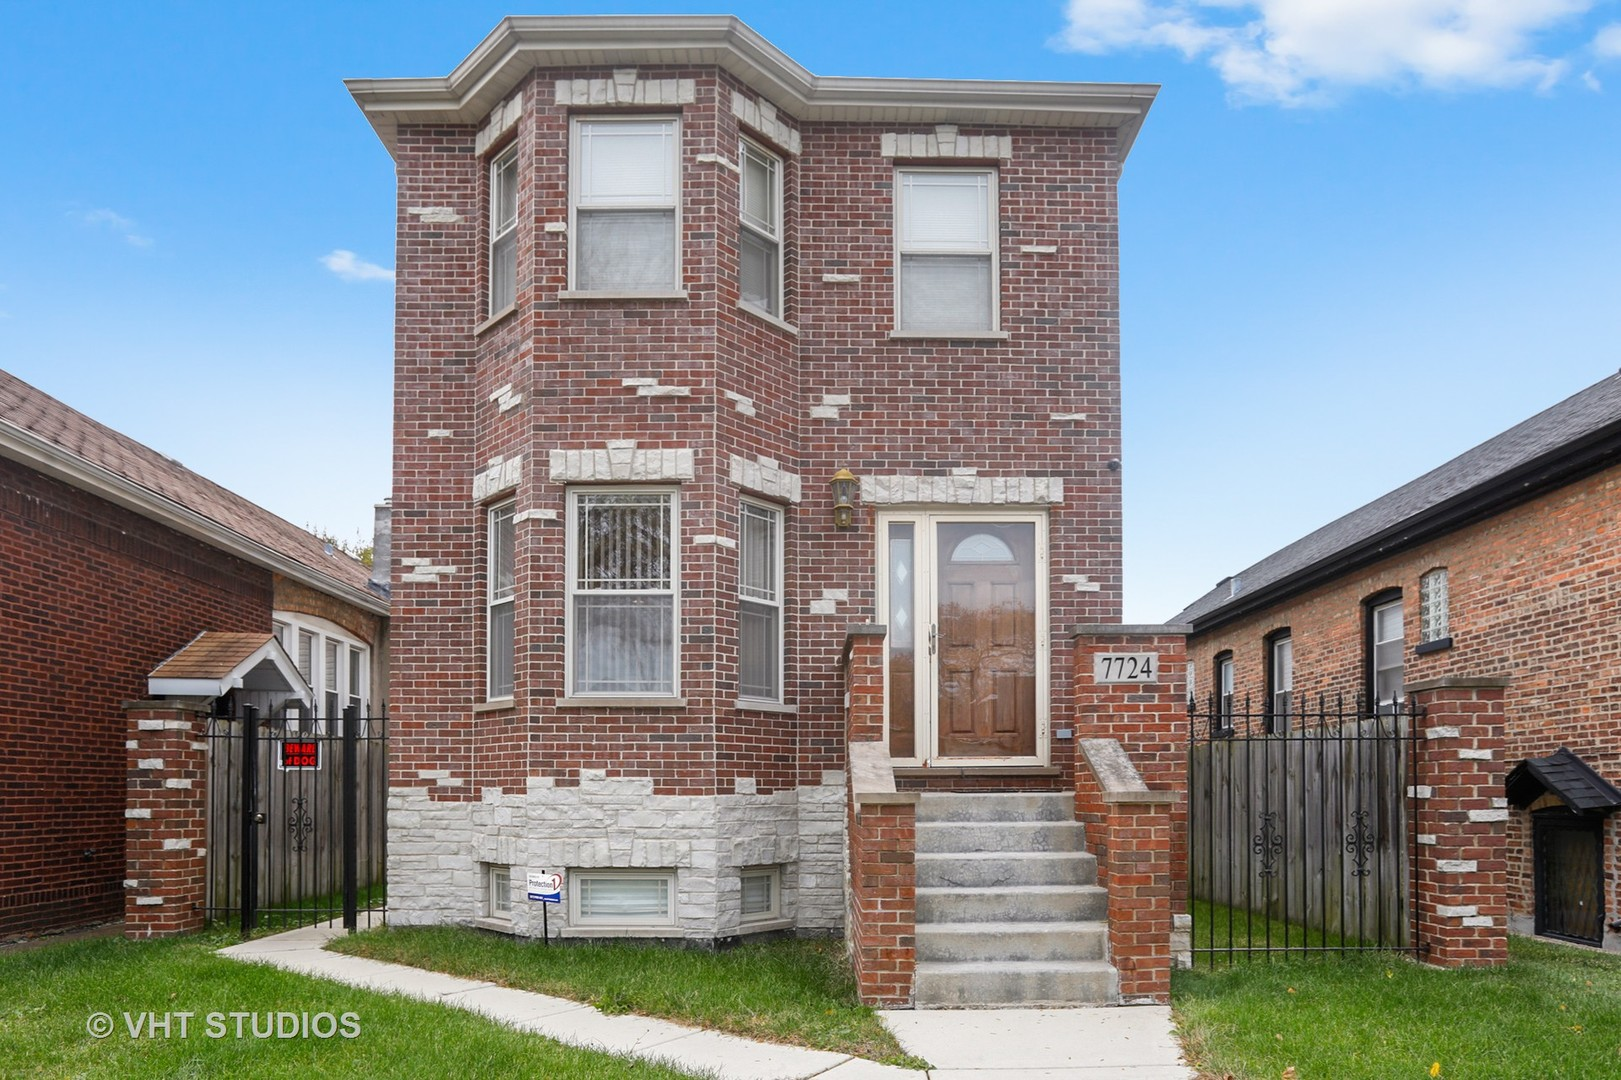 7724 SOUTH PRAIRIE AVENUE, CHICAGO, IL 60619